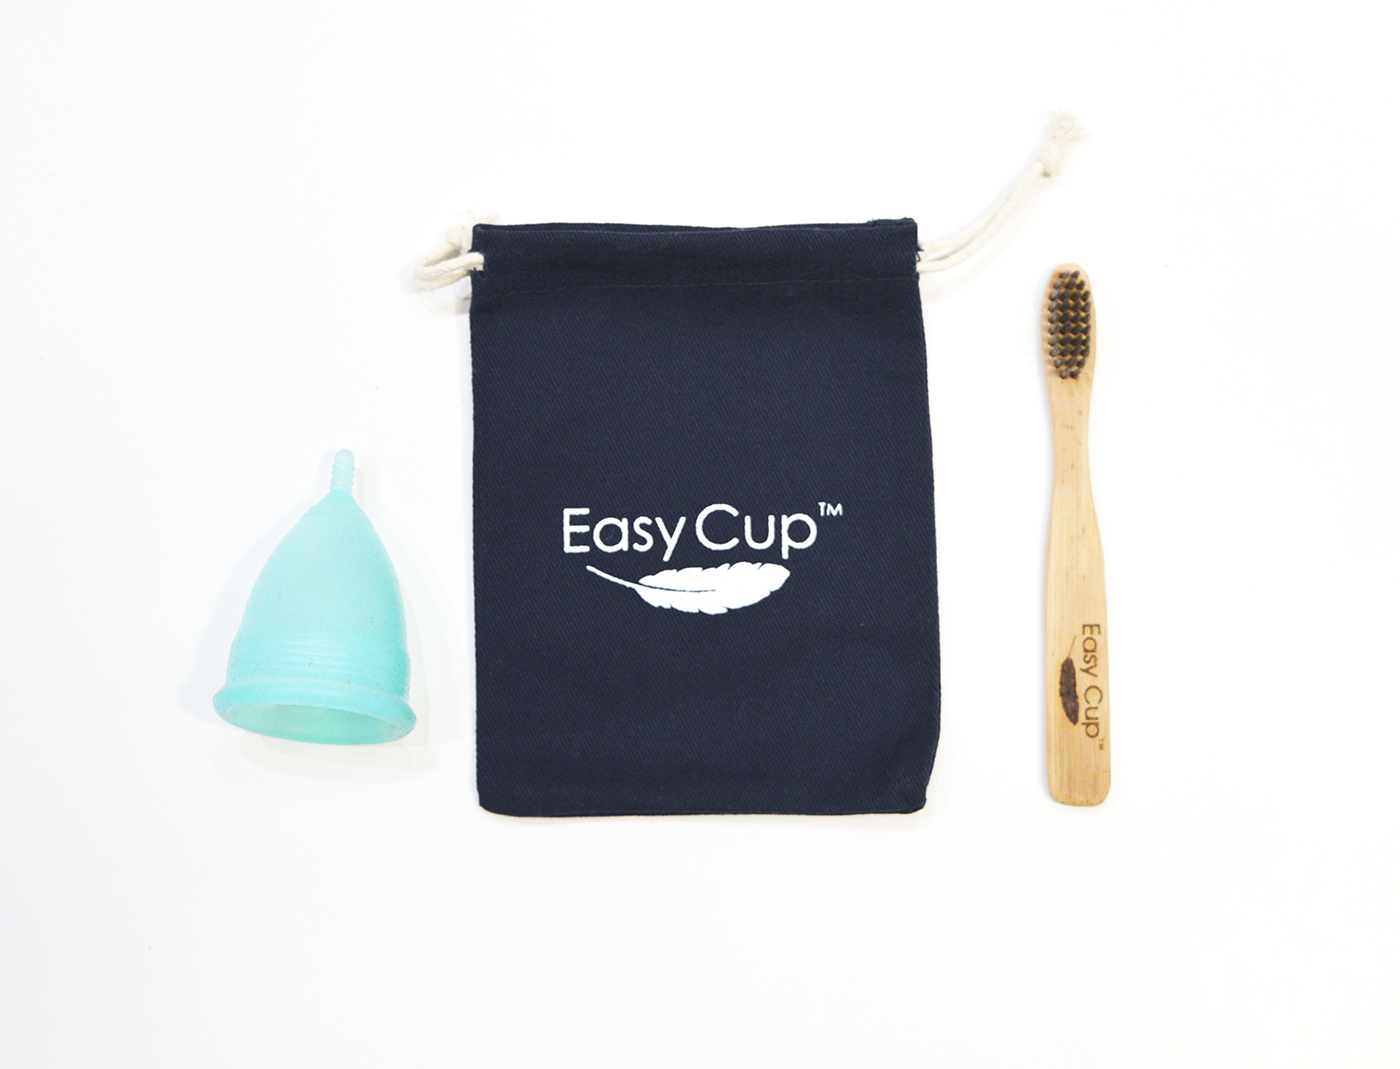 The EasyCup™ One-Size Menstrual Cup Kit with Bag and Cleaning Brush 00940